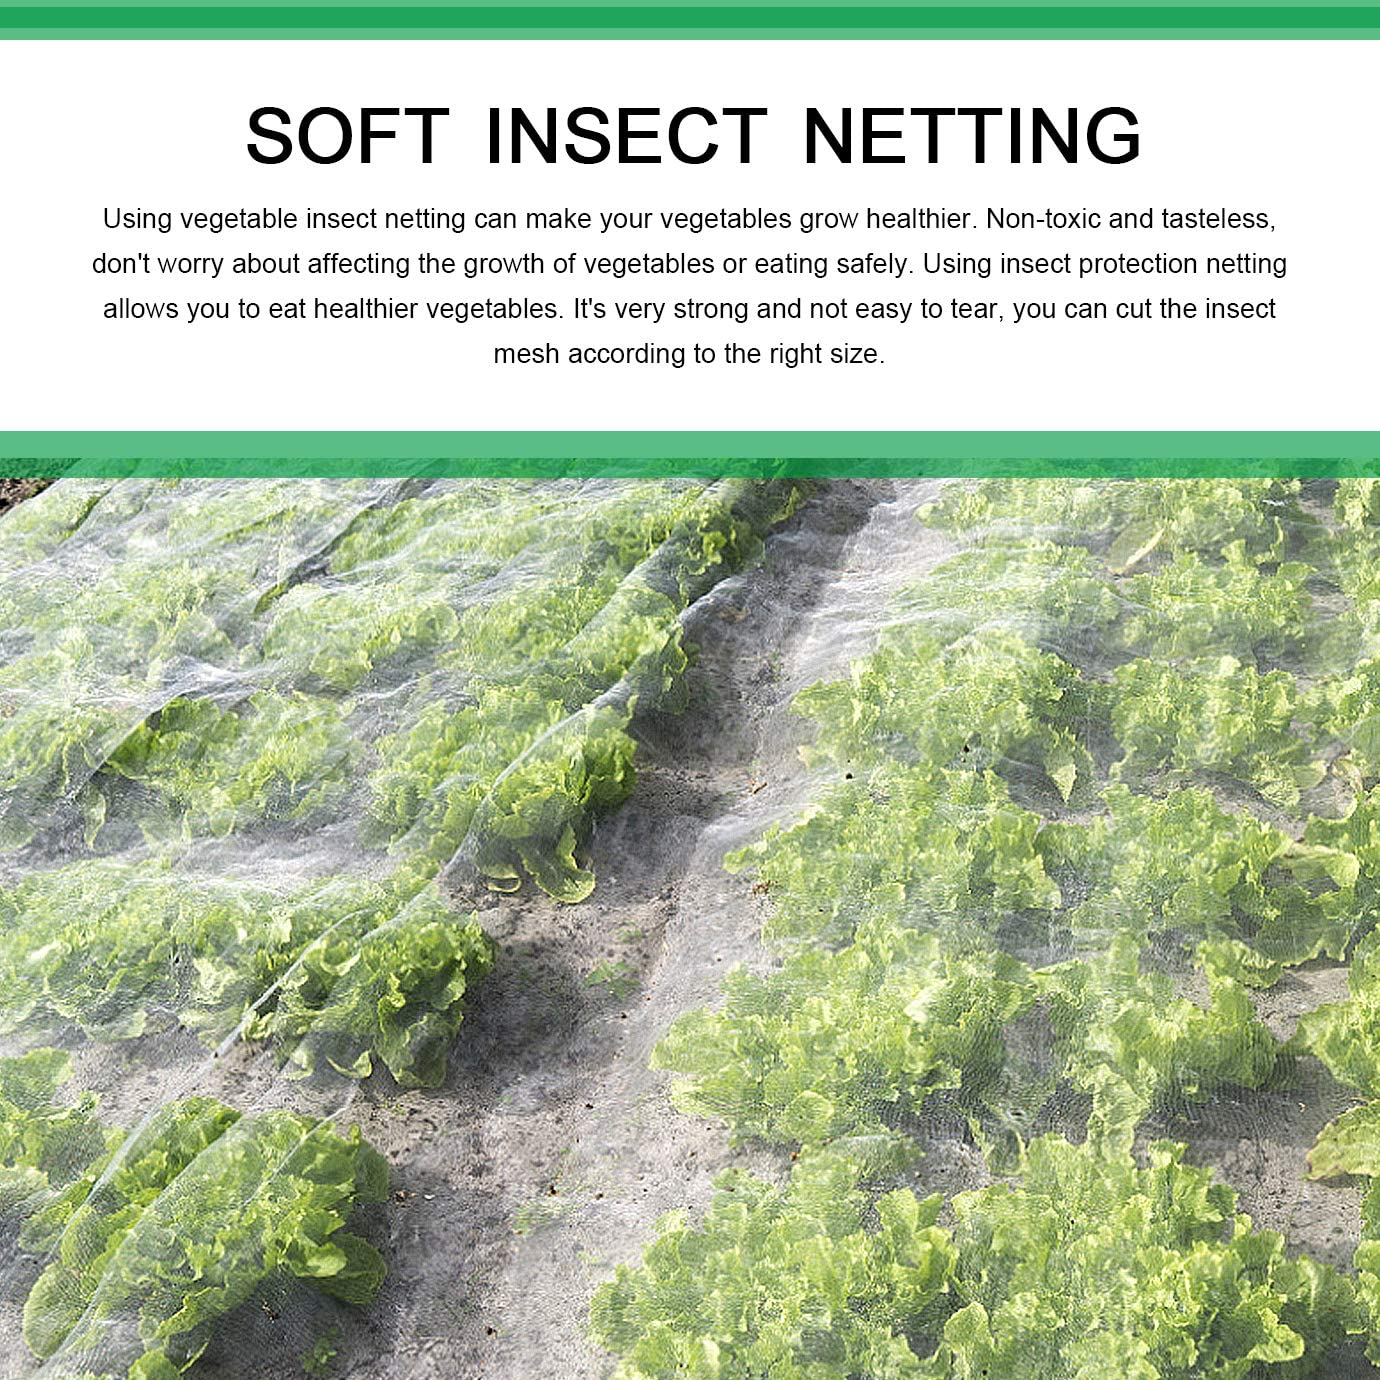 WXJ13 2 m x 3 m Soft Insects Netting Garden Anti Bird Butterfly Net Mesh for Protection Plants Vegetable Greenhouse Fruit Flowers Crops Fine Carrot Fly Net Horticultural Netting